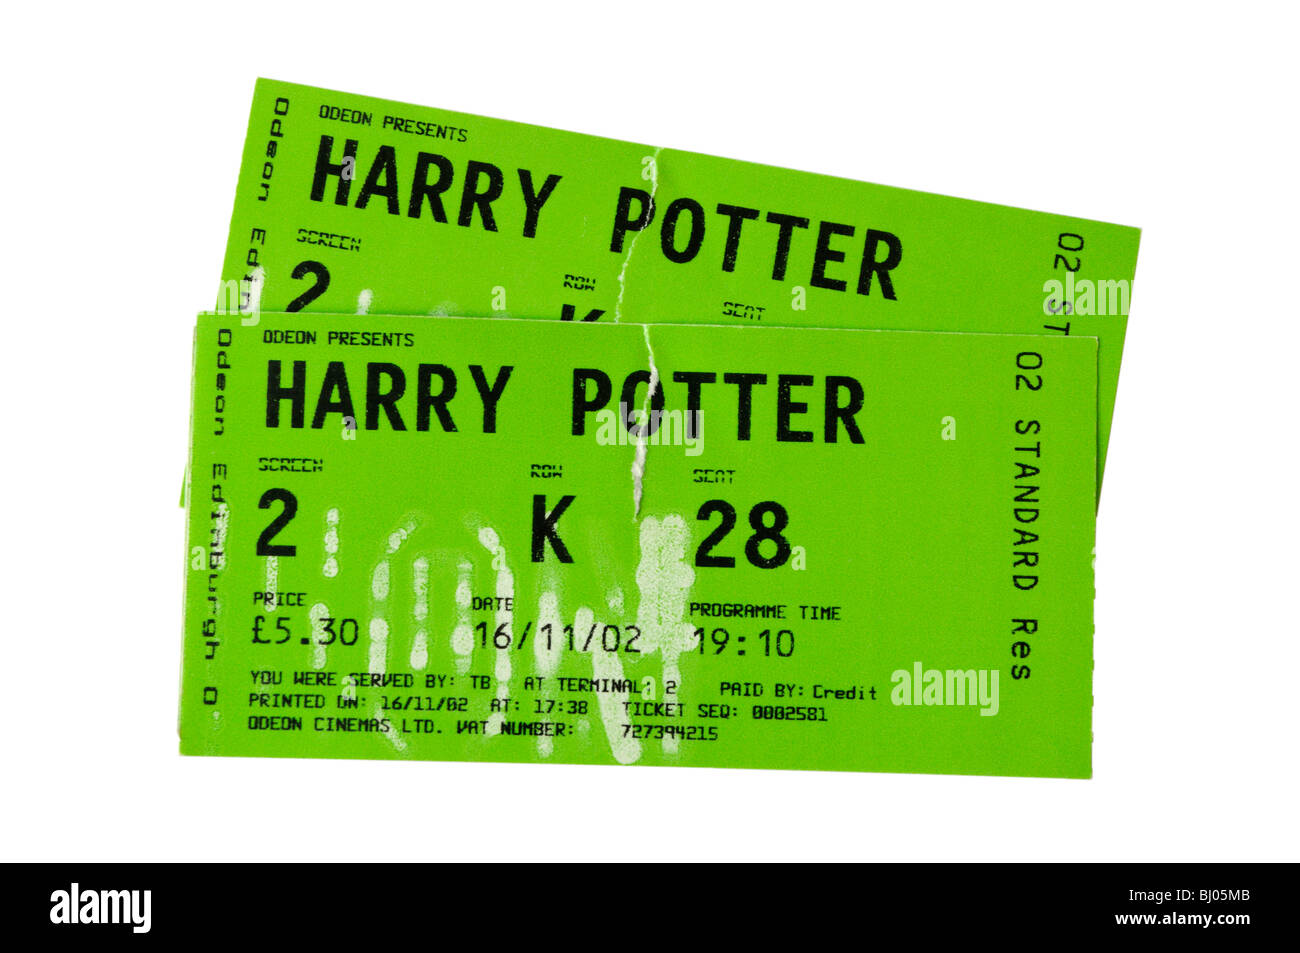 A pair of cinema tickets to see Harry Potter - Stock Image